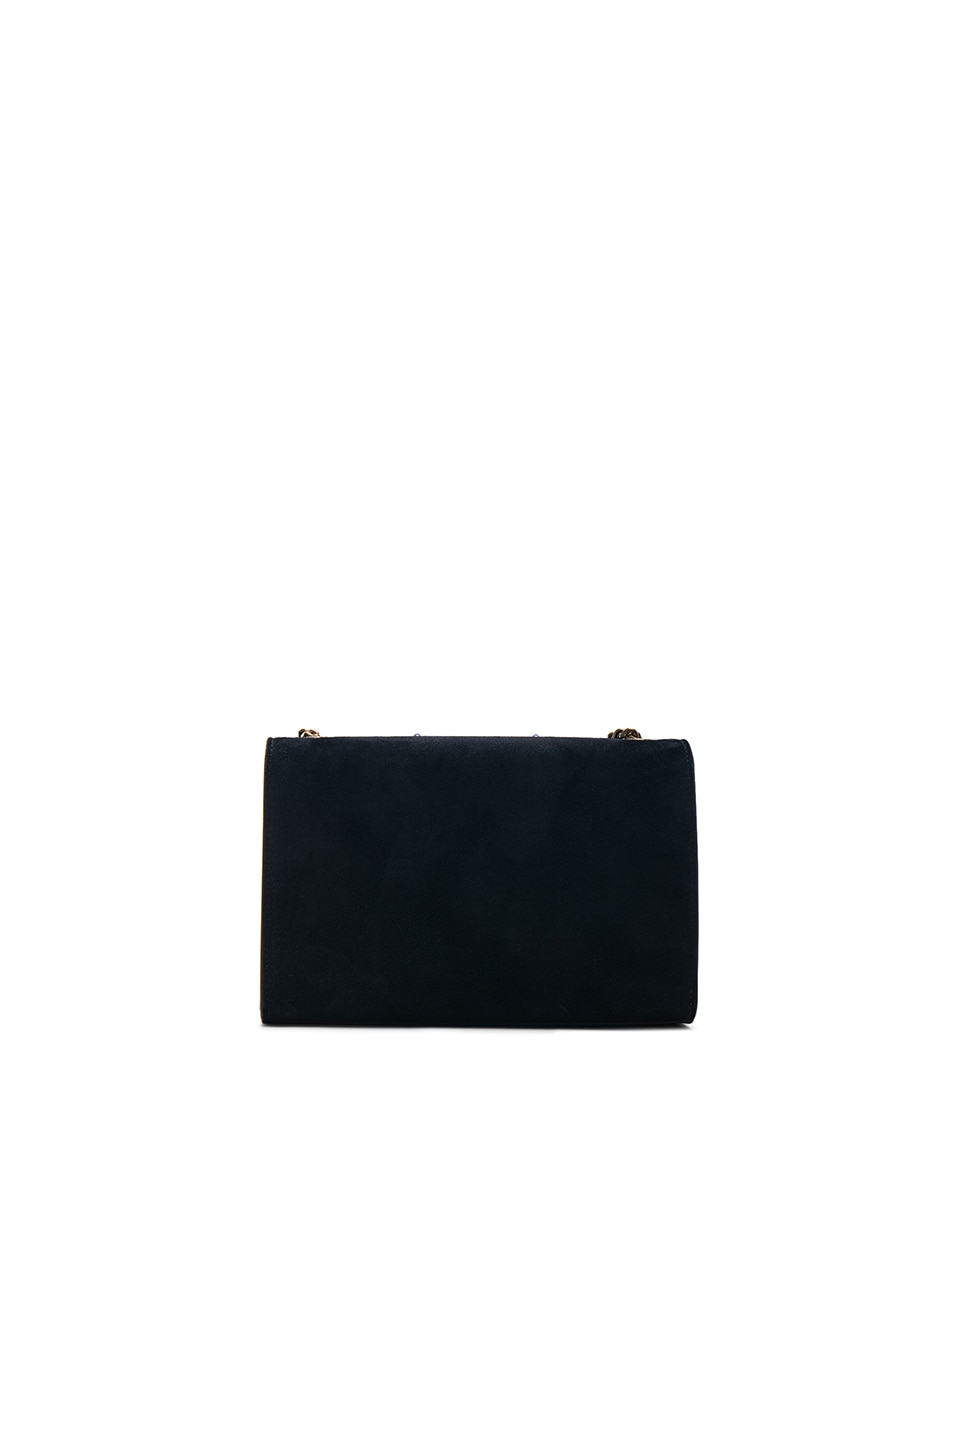 Image 2 of Saint Laurent Small Crystal Embellished Suede Monogramme Kate Chain Bag in Black & Multicolor